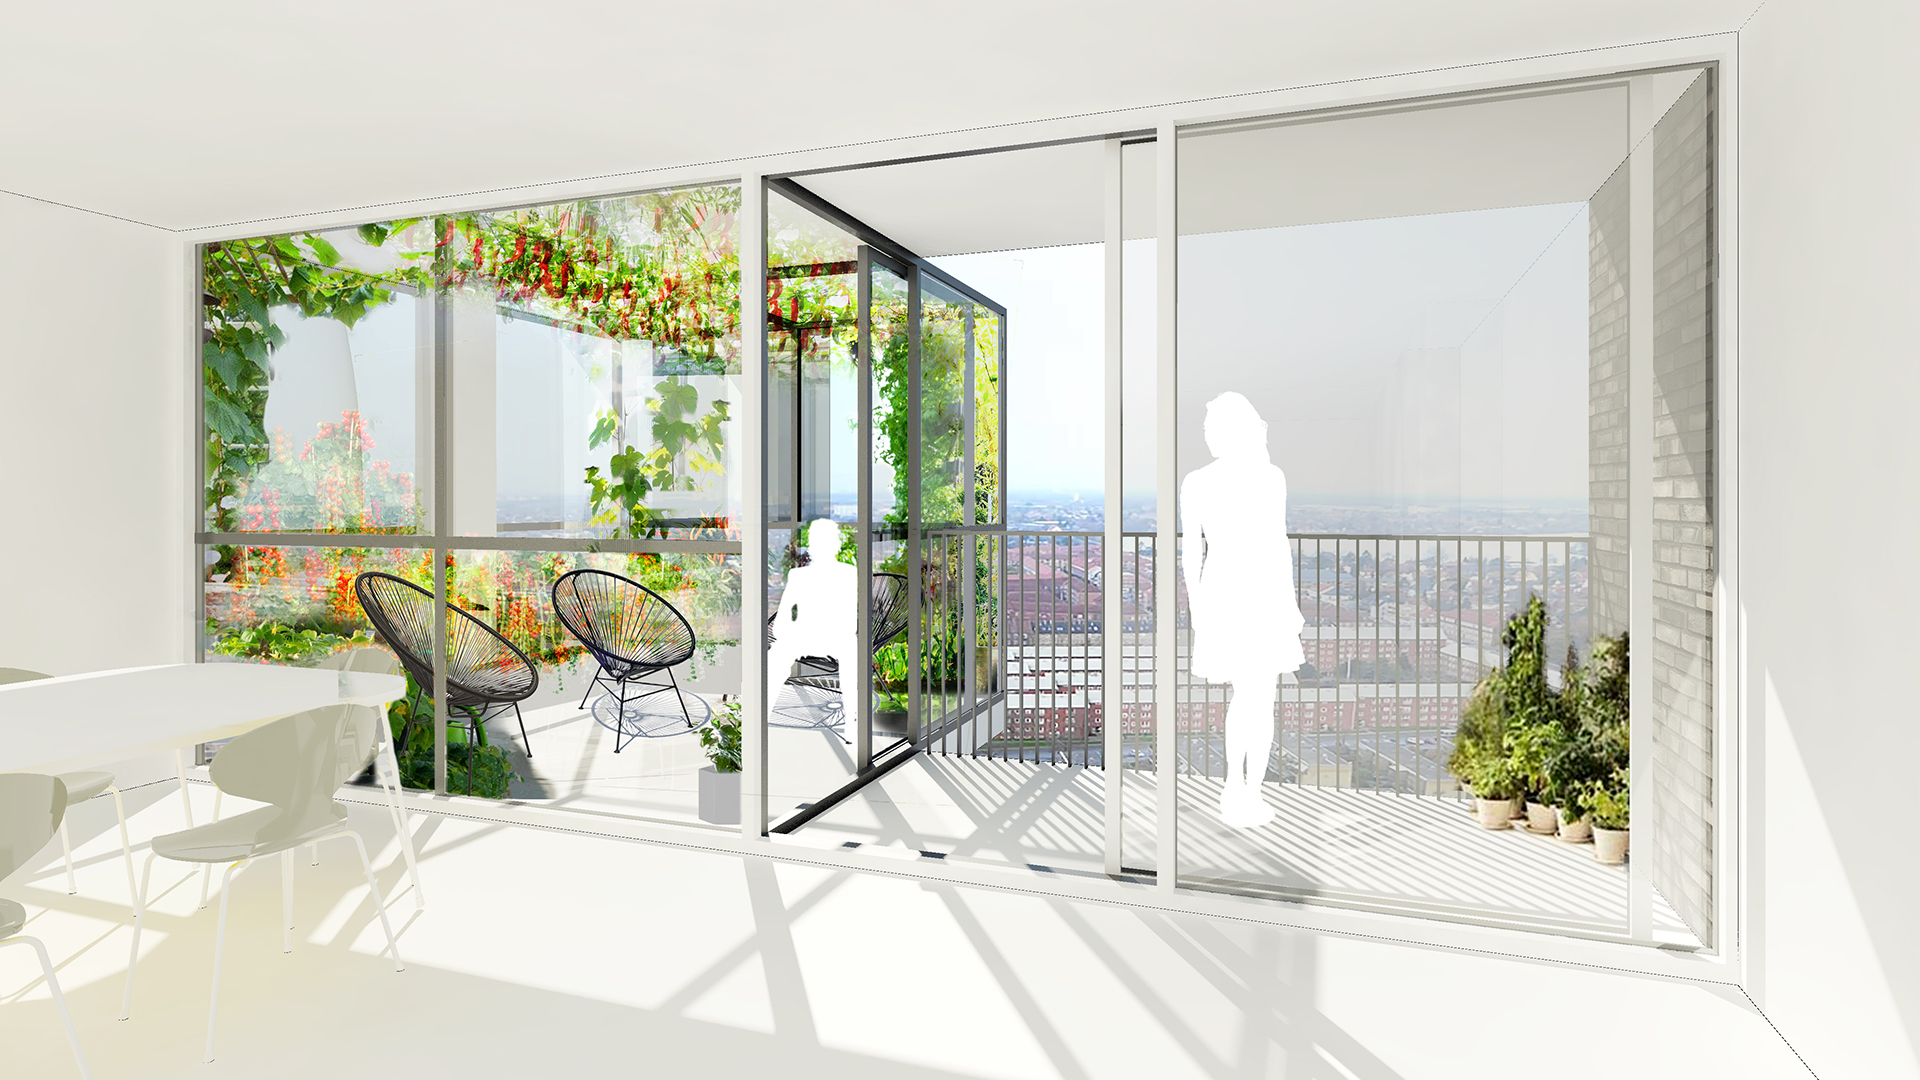 residential vertical farming architecture